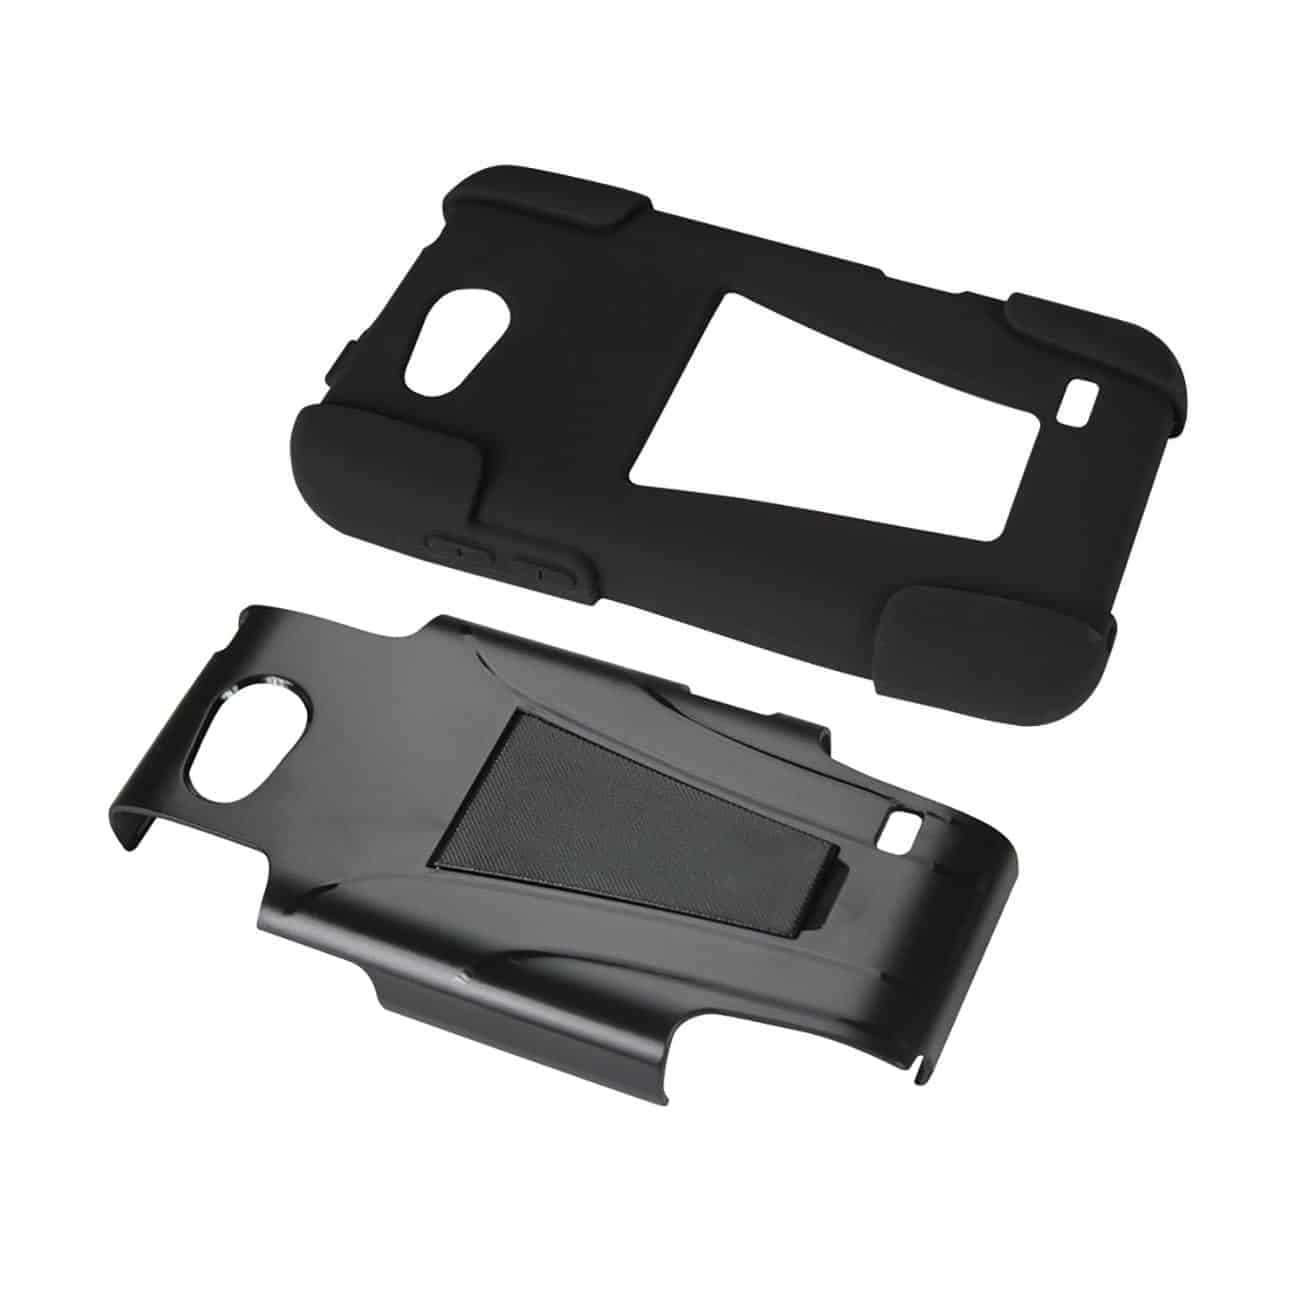 ZTE SPEED HYBRID HEAVY DUTY CASE WITH KICKSTAND IN BLACK